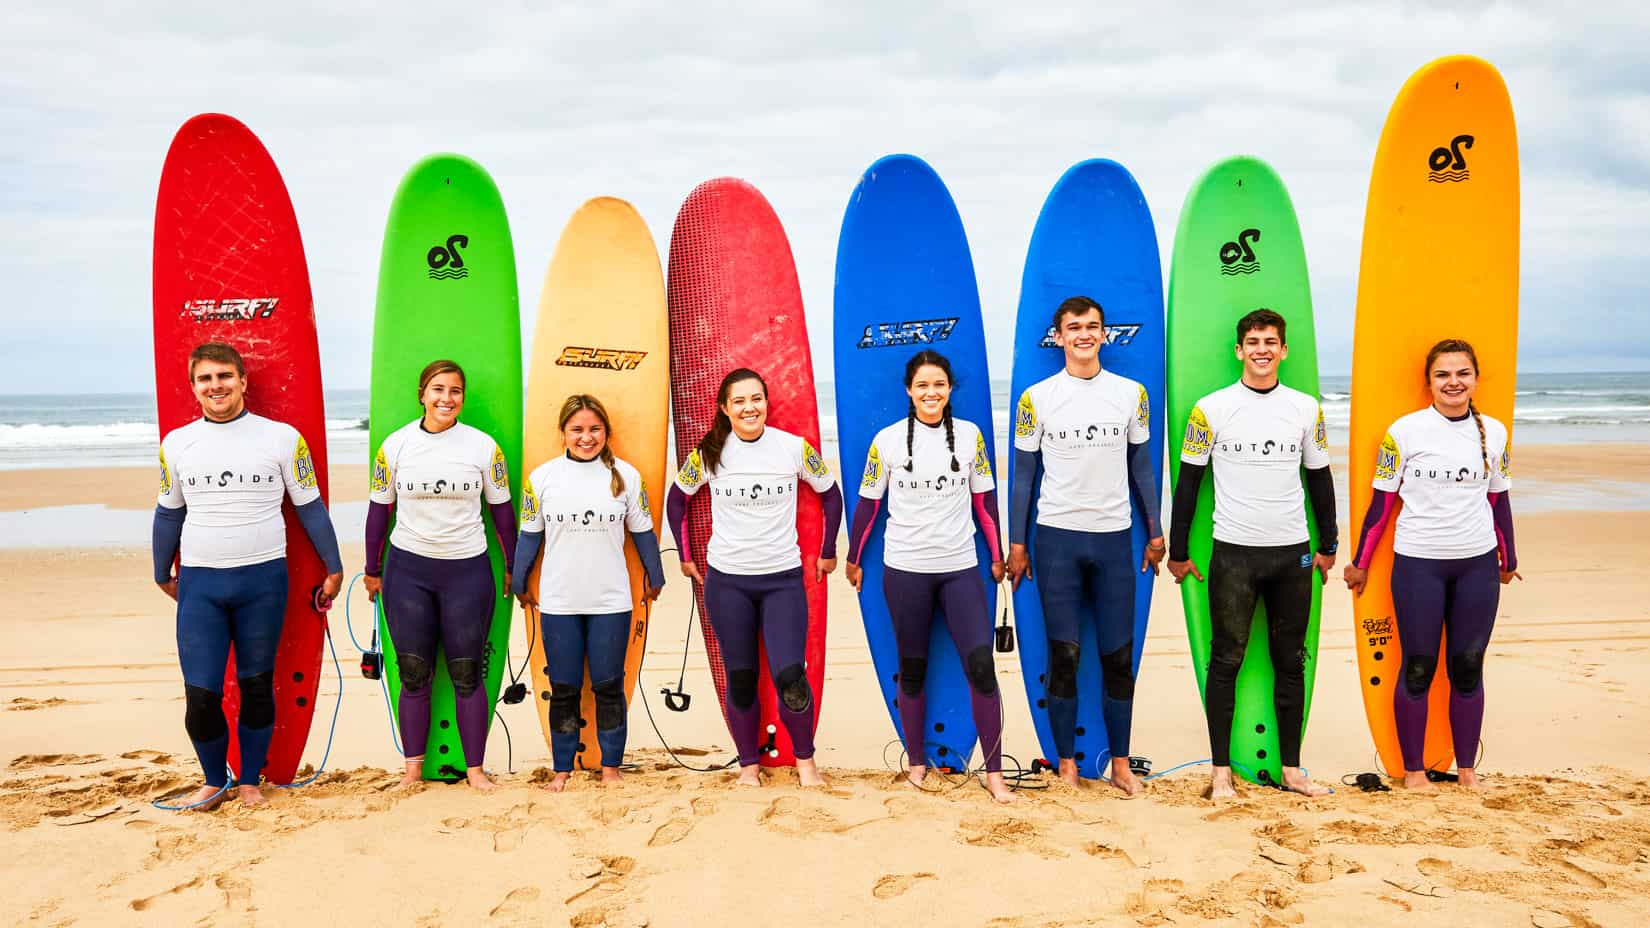 Students lined up with surfboards on the beach. (Lisbon, 2019)